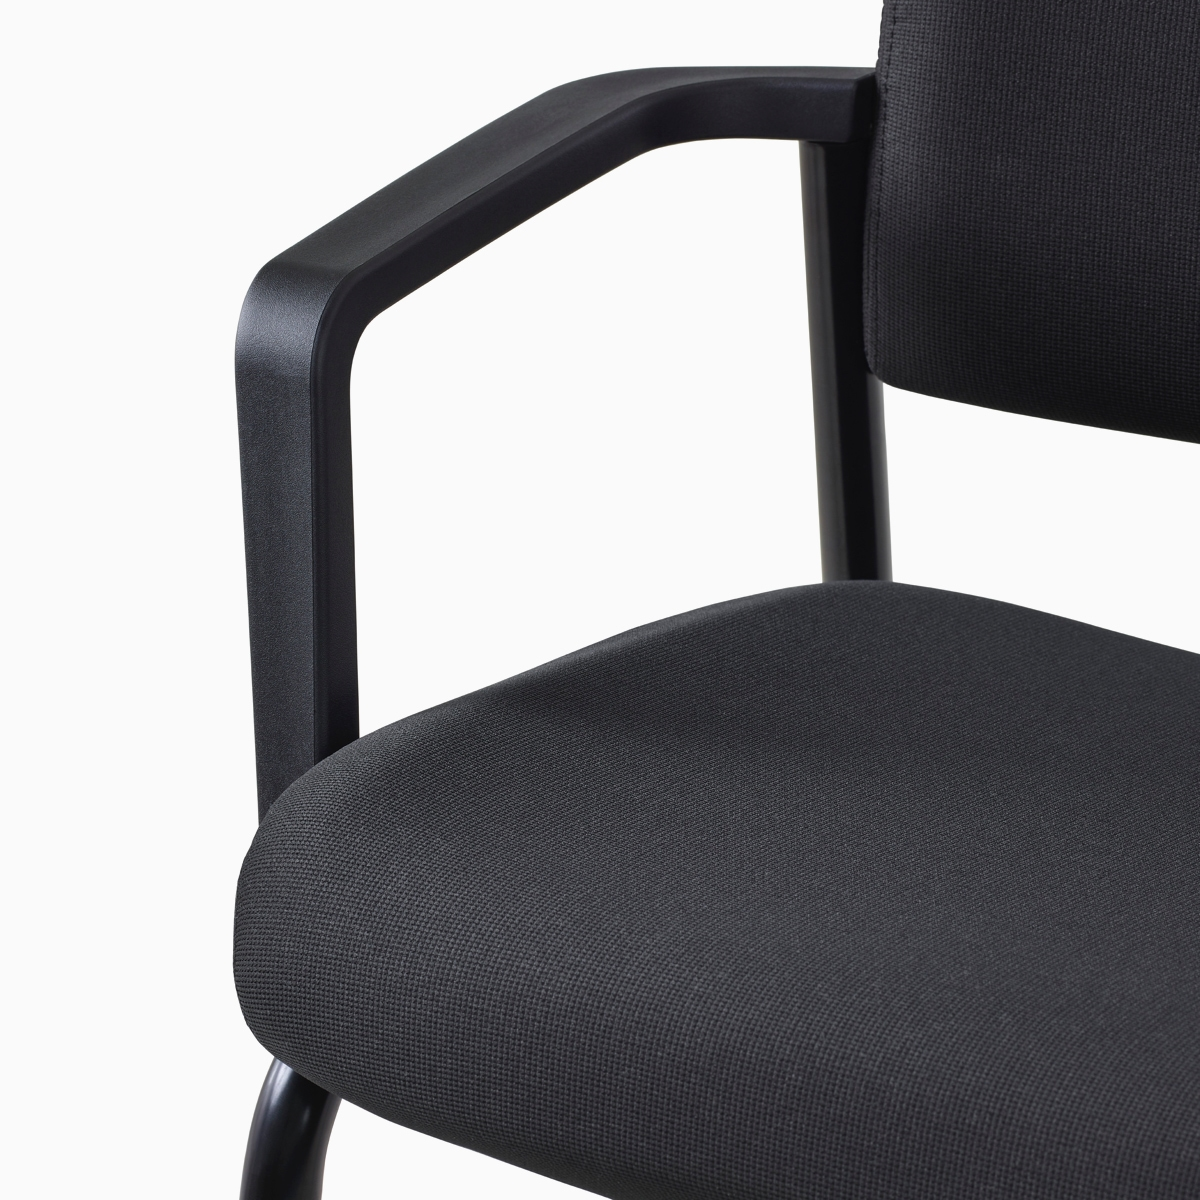 A close-up view of a black Verus Plus Chair upholstered seat and arm.